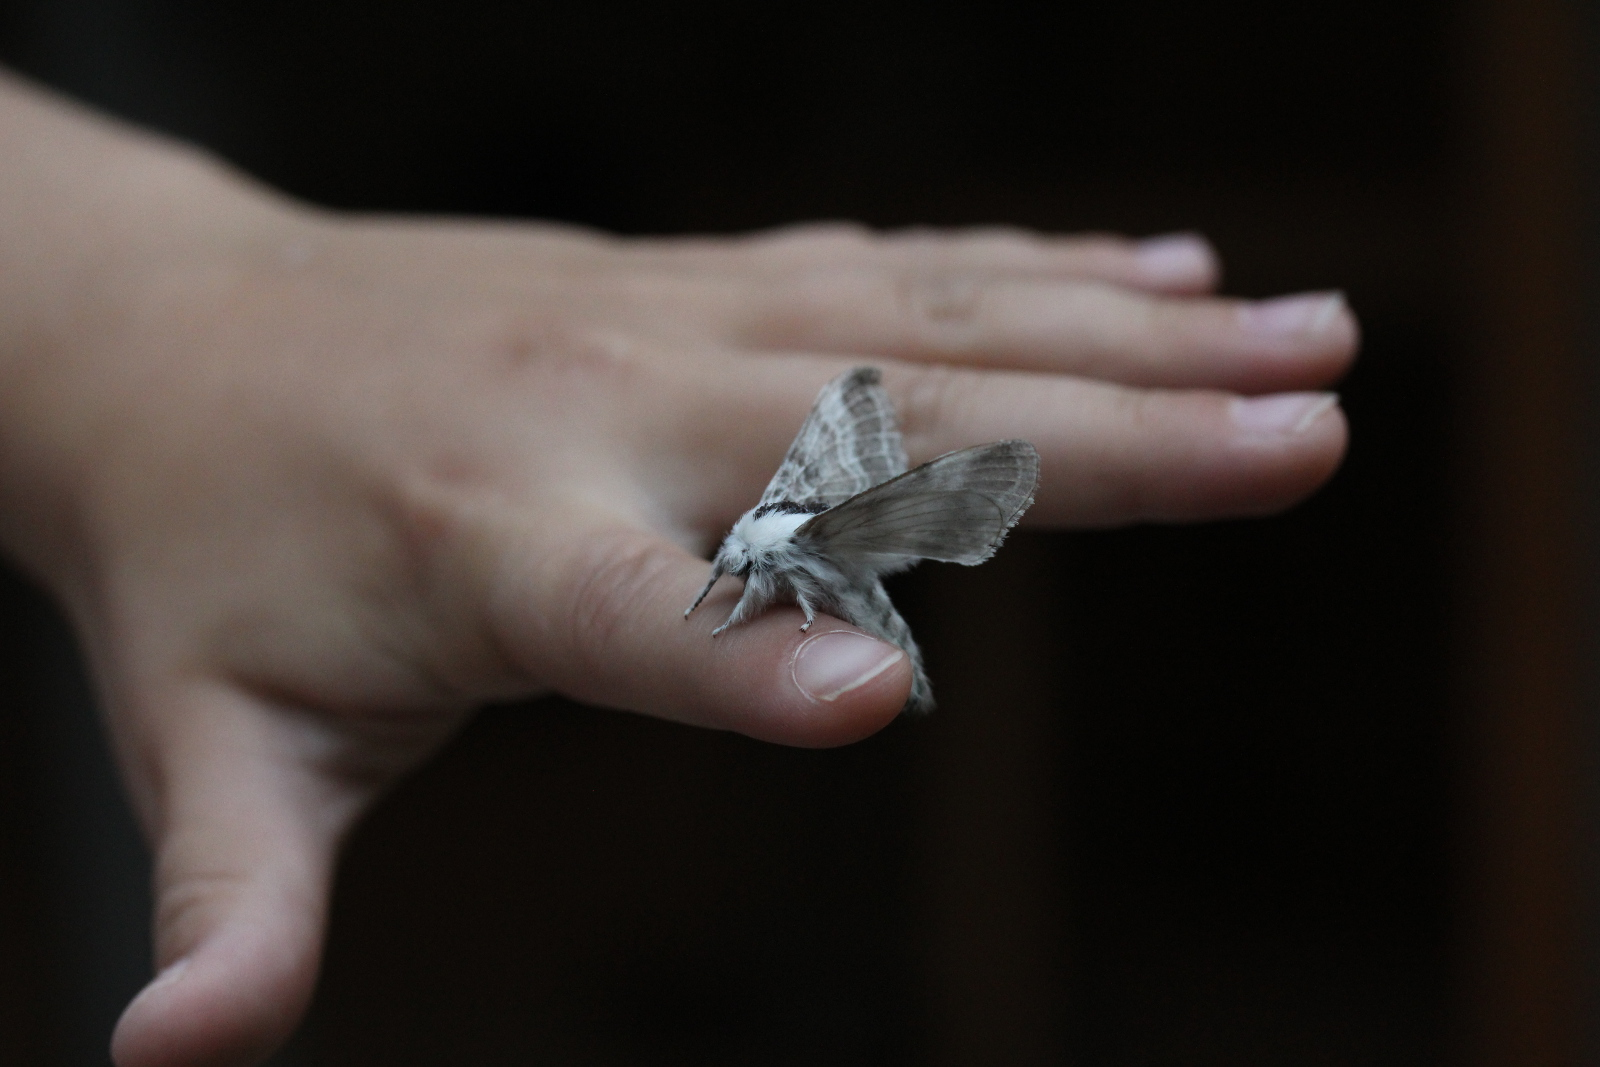 grey/white moth on child's hand